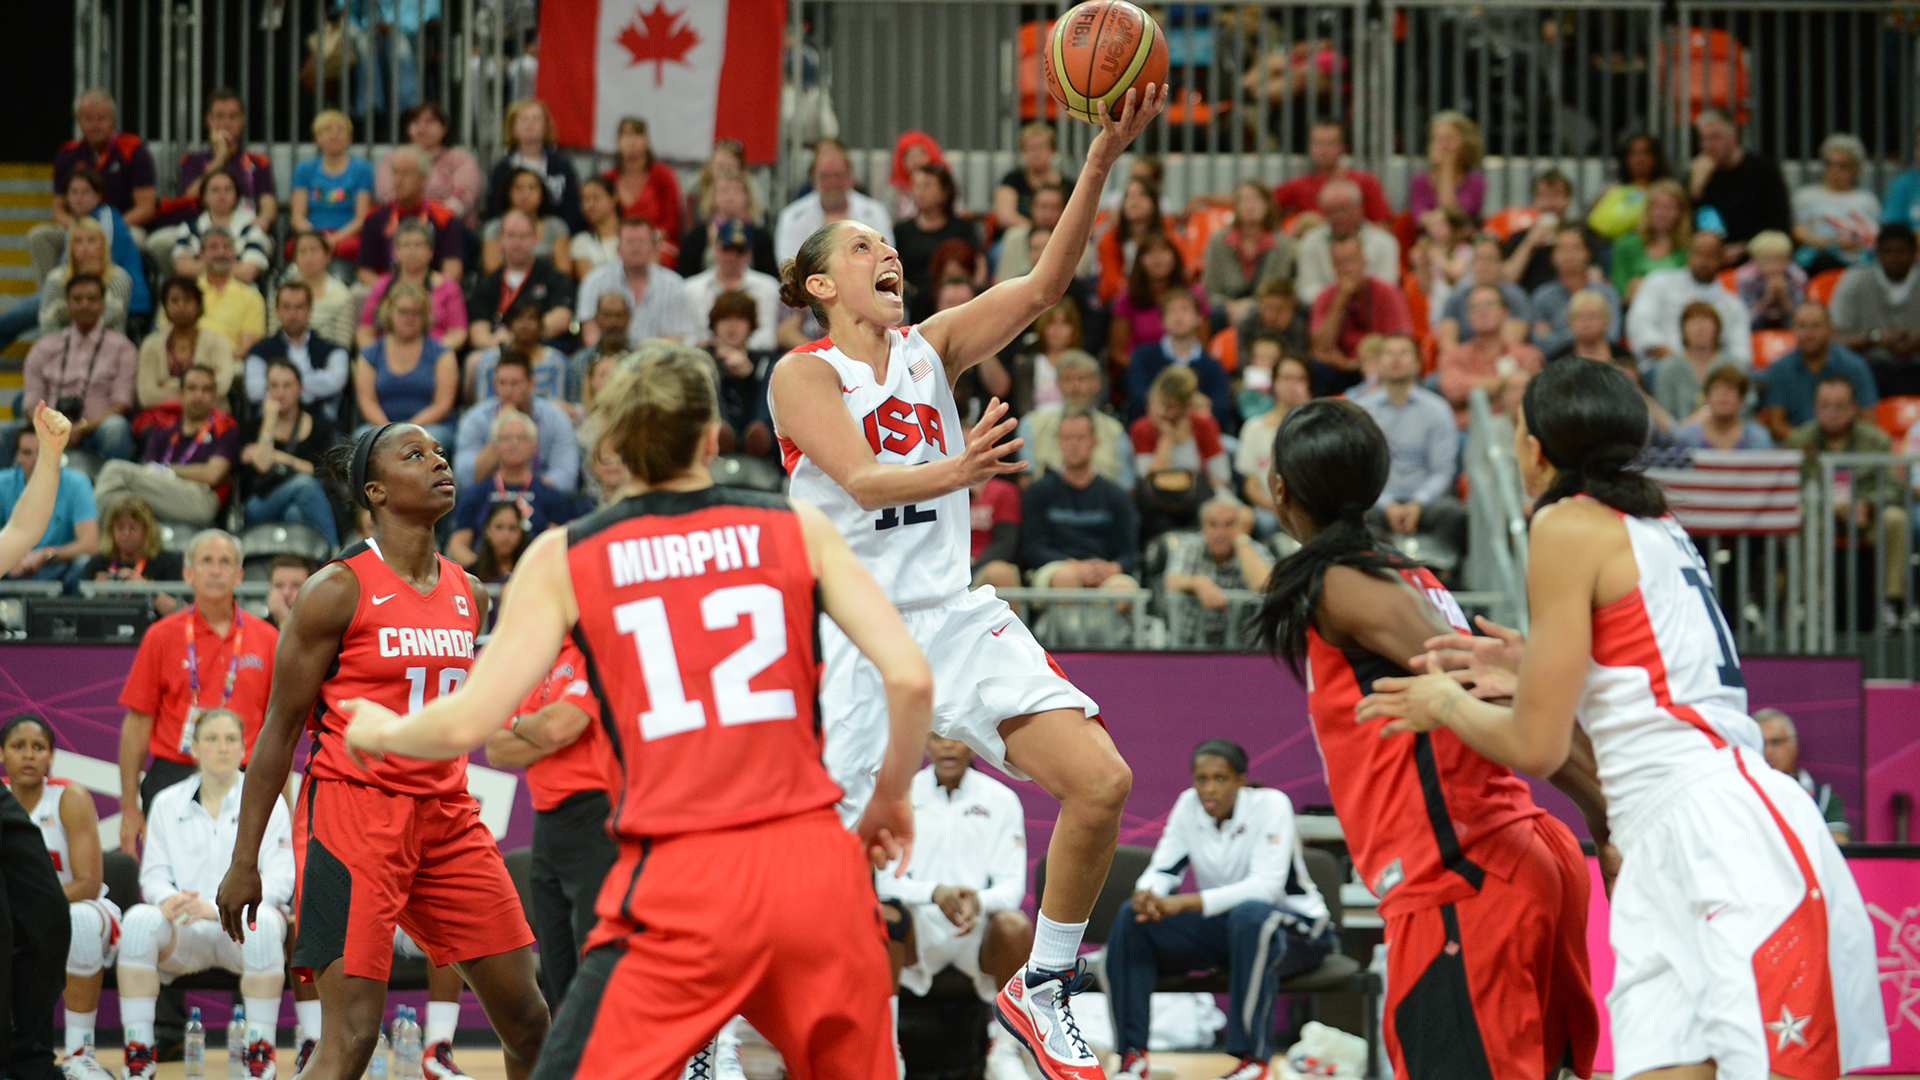 Diana Taurasi goes in for a shot versus Canada